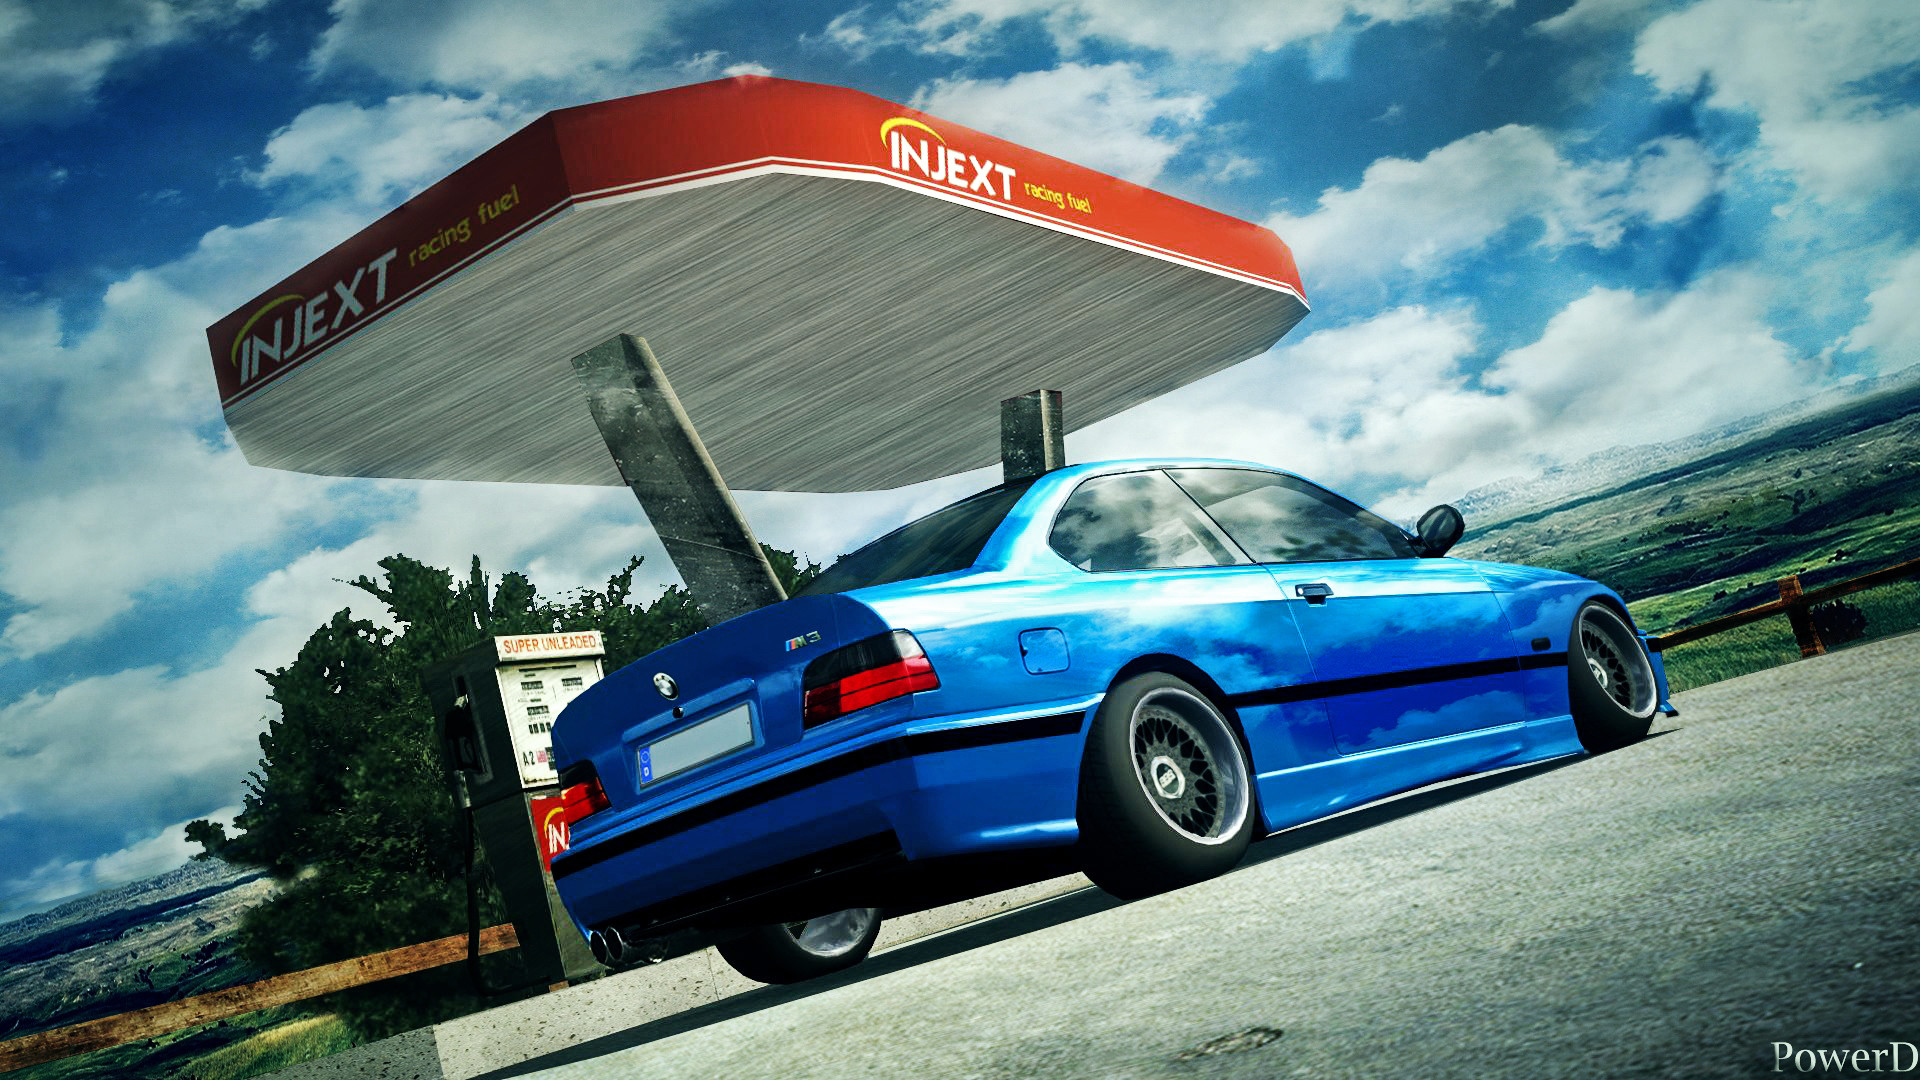 Bmw E36 M3 Wallpaper Posted By Michelle Johnson